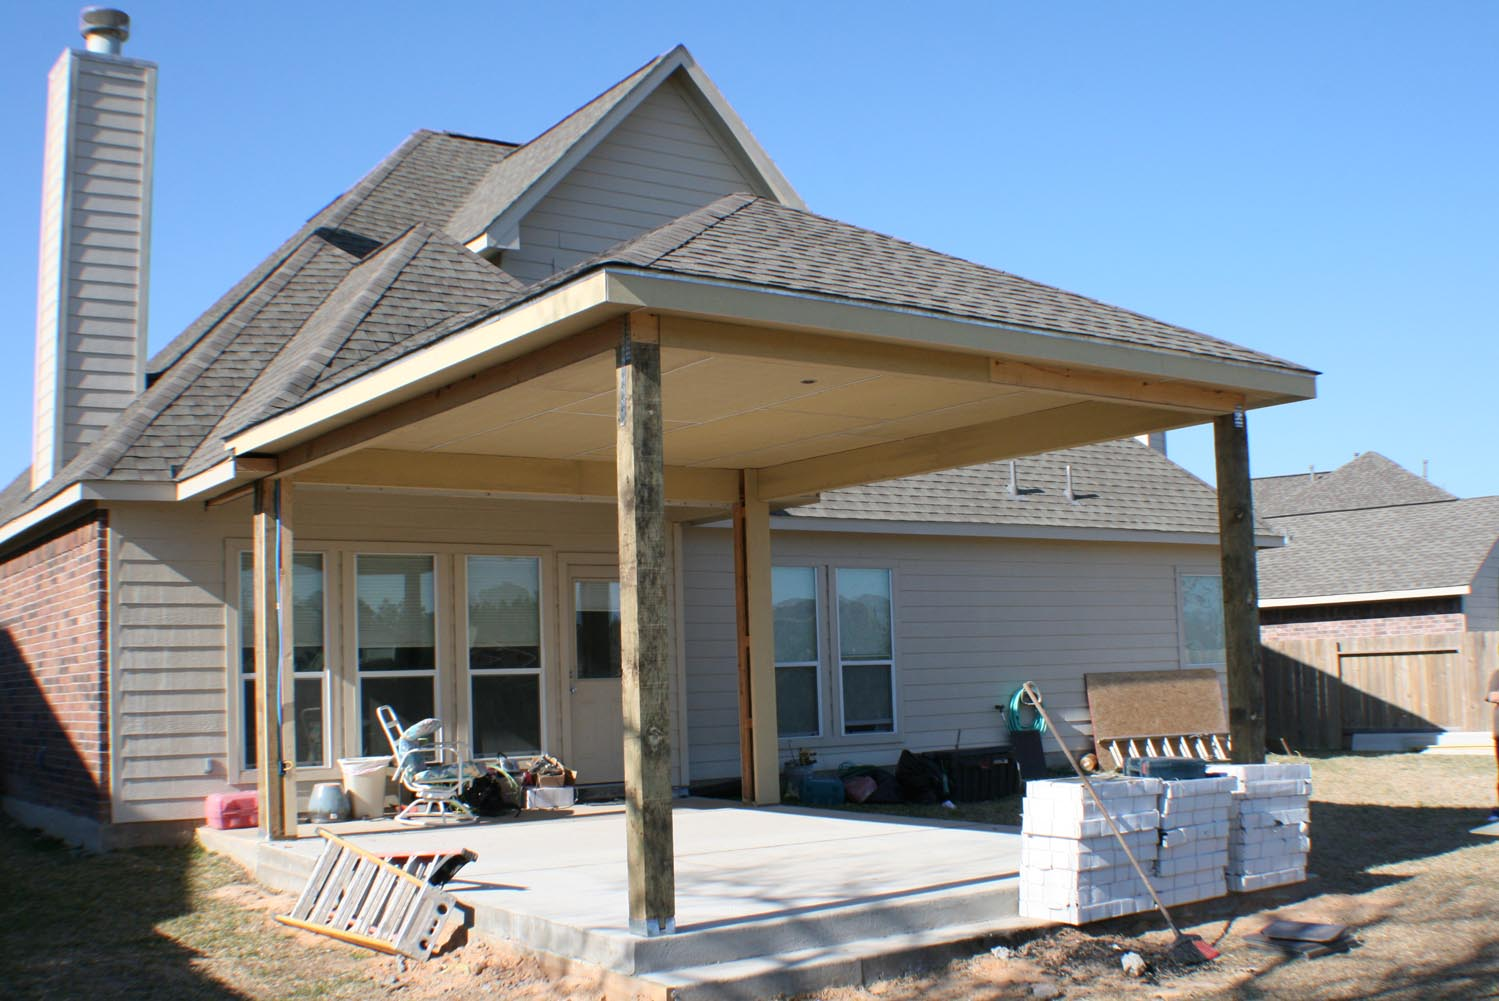 16 by 20 Patio Cover + Outdoor Kitchen - HHI Patio Covers on Backyard Patio Cover  id=37932